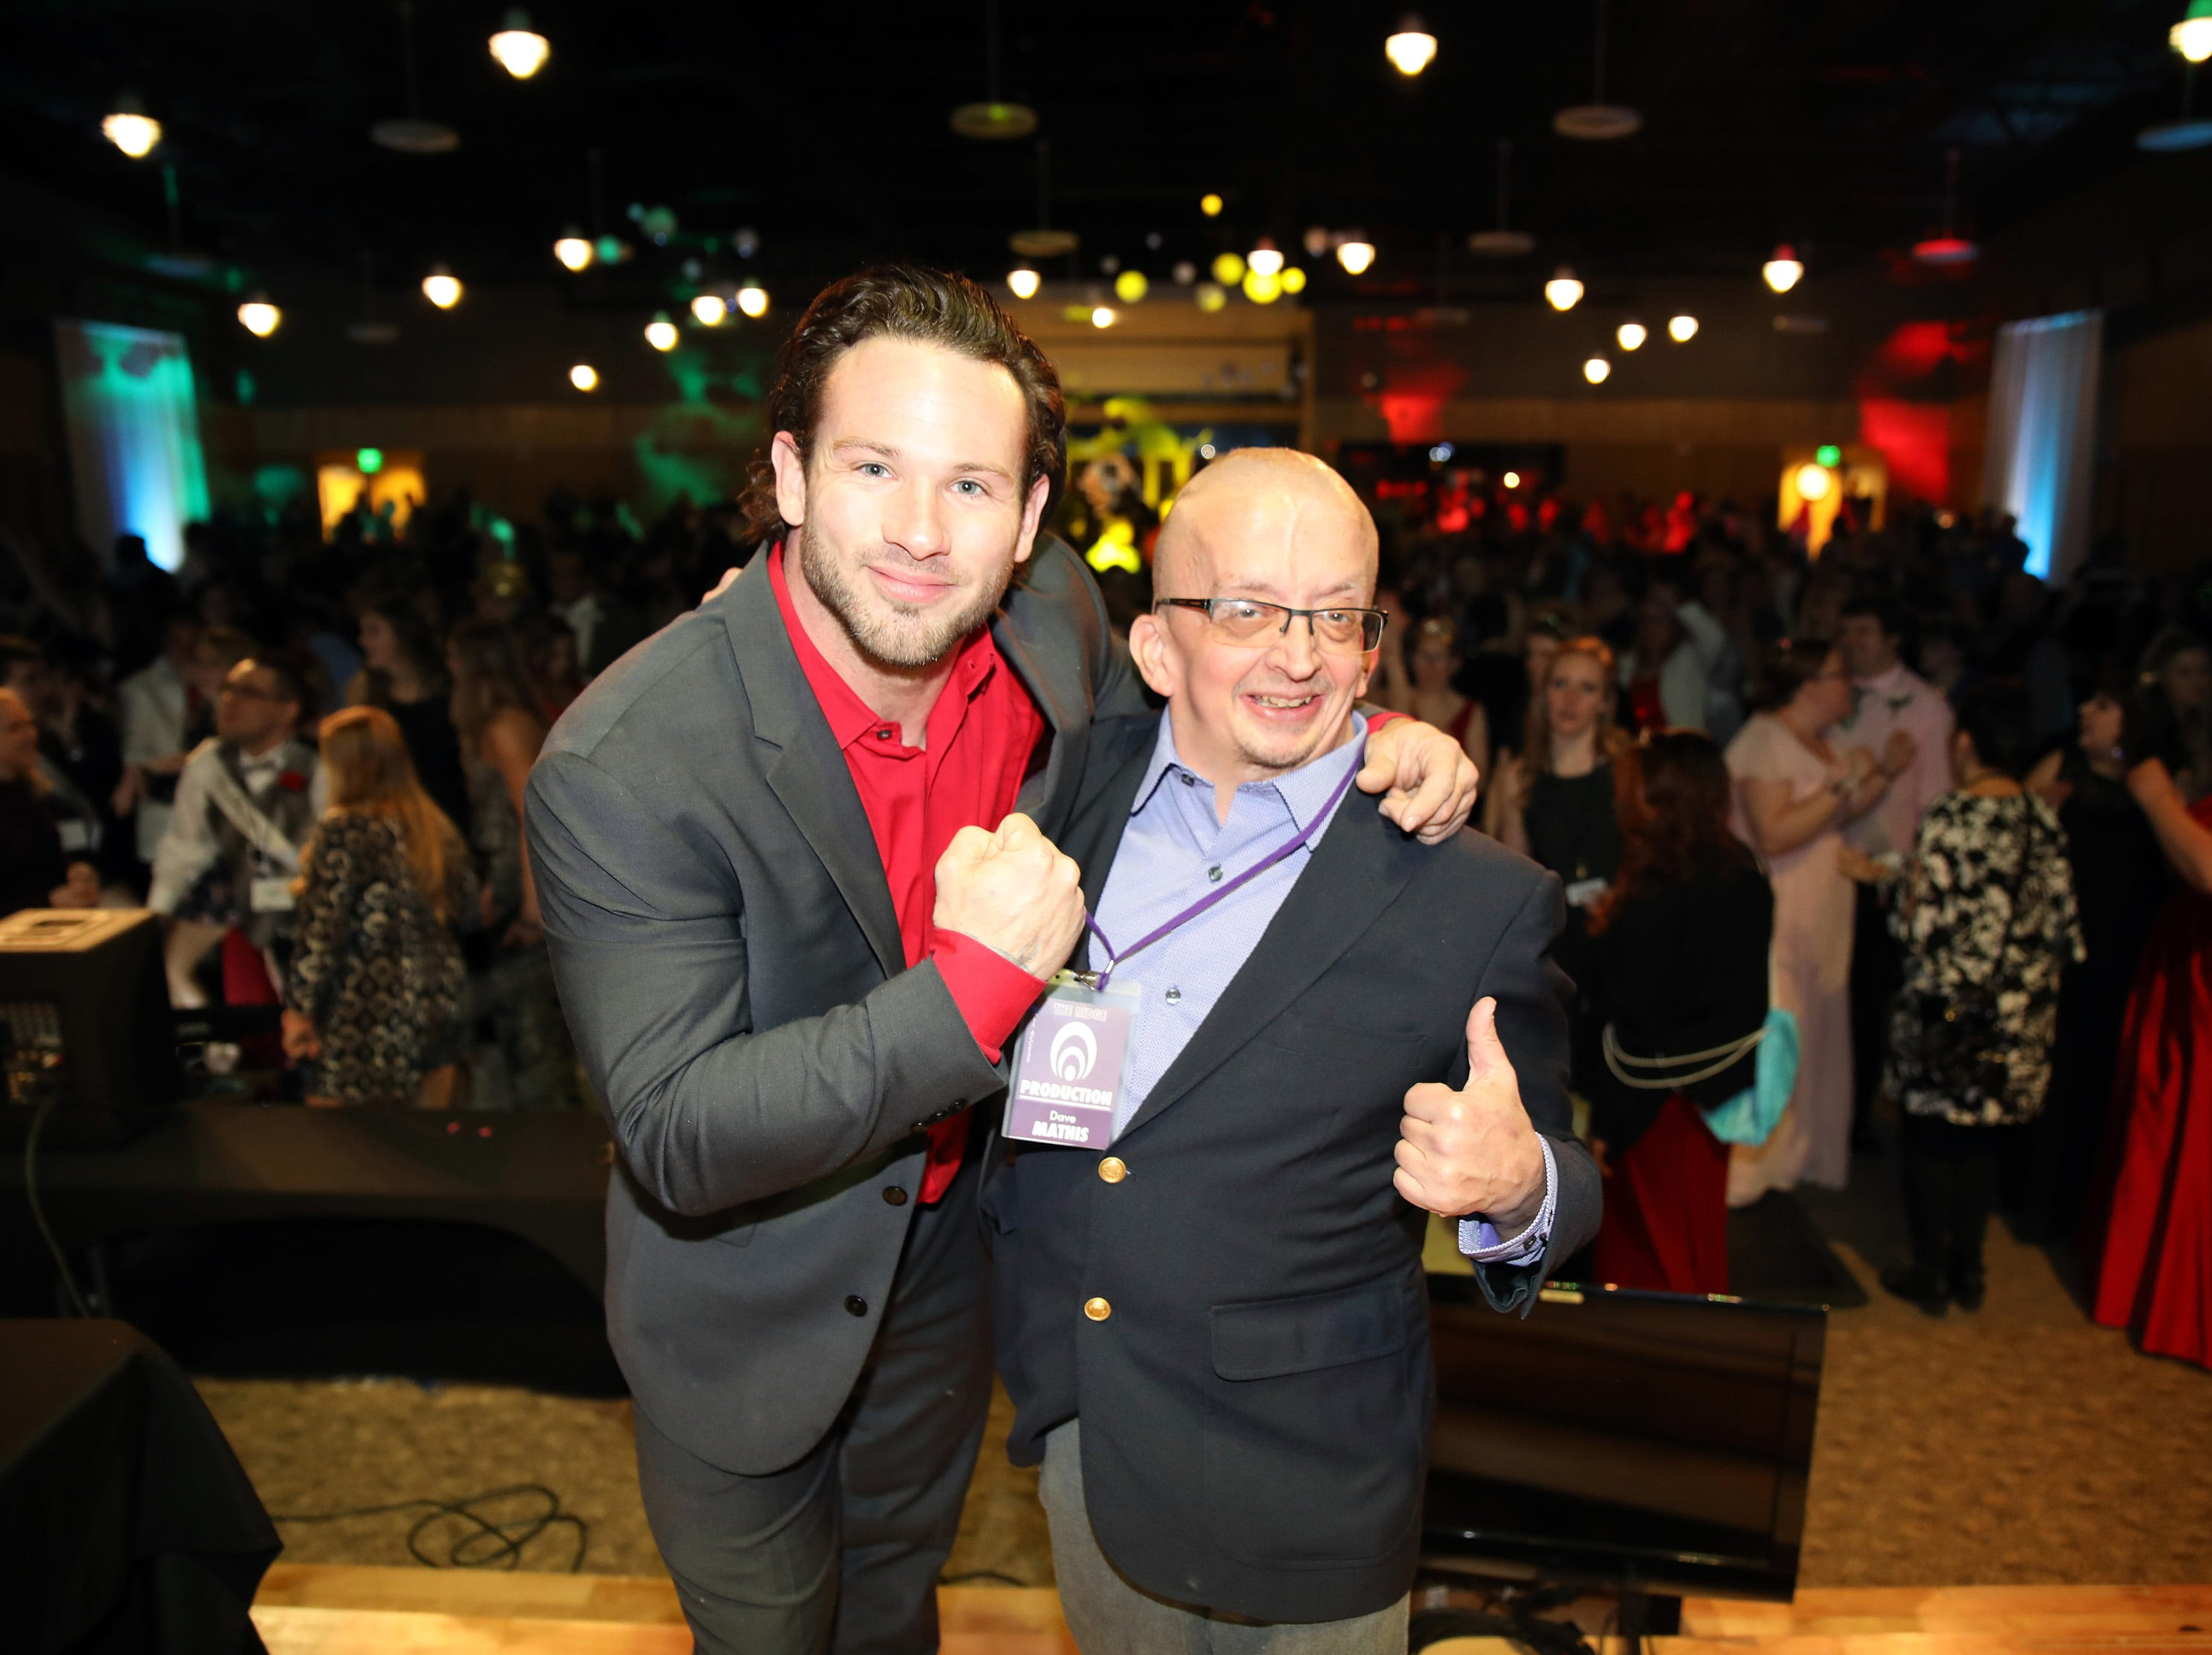 Joe Hogan of Train to Inspire and Dave Mathis of Altoona stop for a photo during the Night to Shine event at Prairie Ridge Church in Ankeny on Friday, Feb. 8, 2019. Sponsored by the Tim Tebow Foundation, the event for adults with special needs features a prom-like atmosphere with dancing, limo rides, food and more.